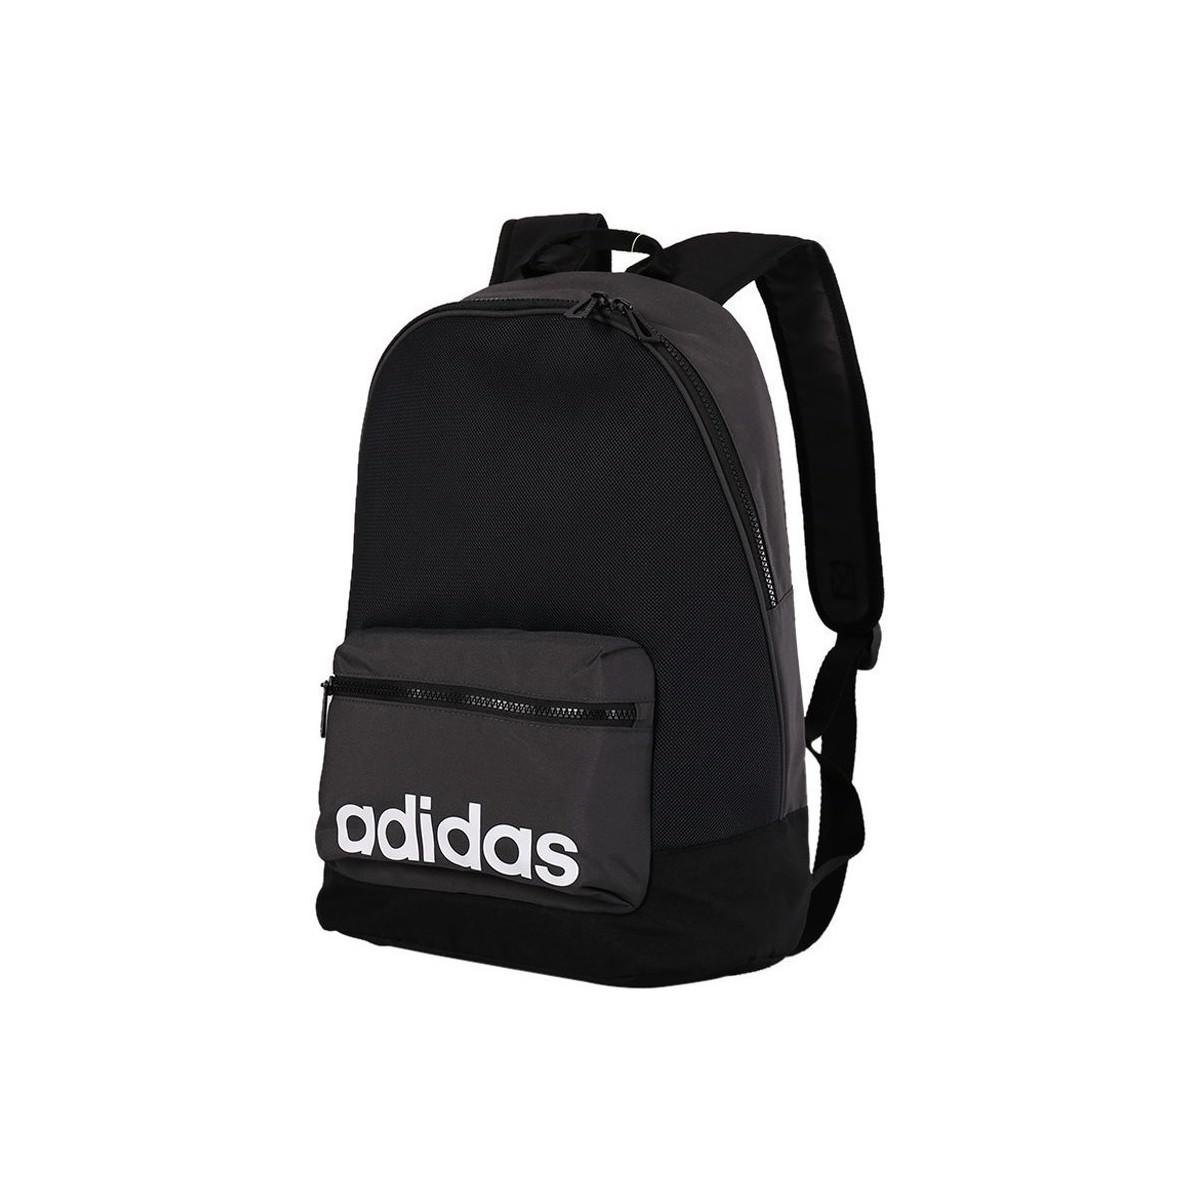 9dde58a1f1be adidas Daily Color Elements Backpack Men s Backpack In Black in ...